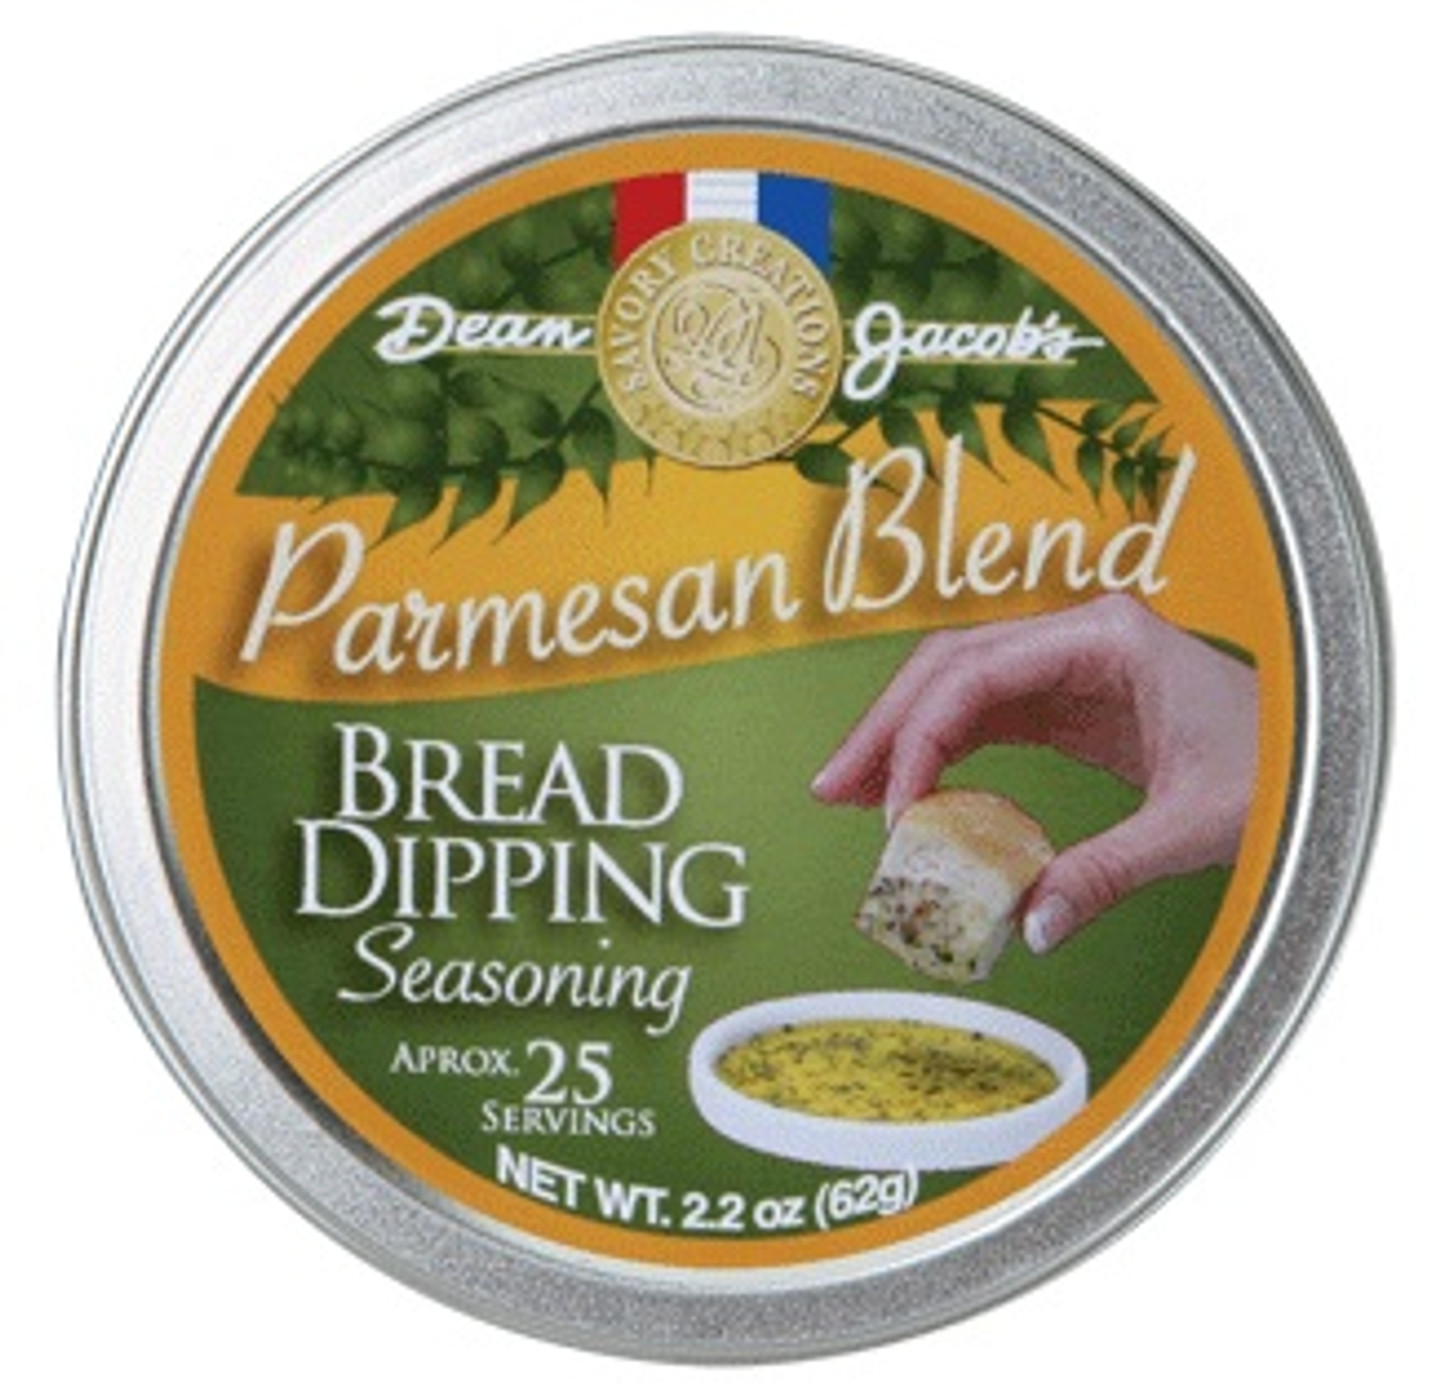 Parmesan Blend Bread Dipping Tin  1.75oz